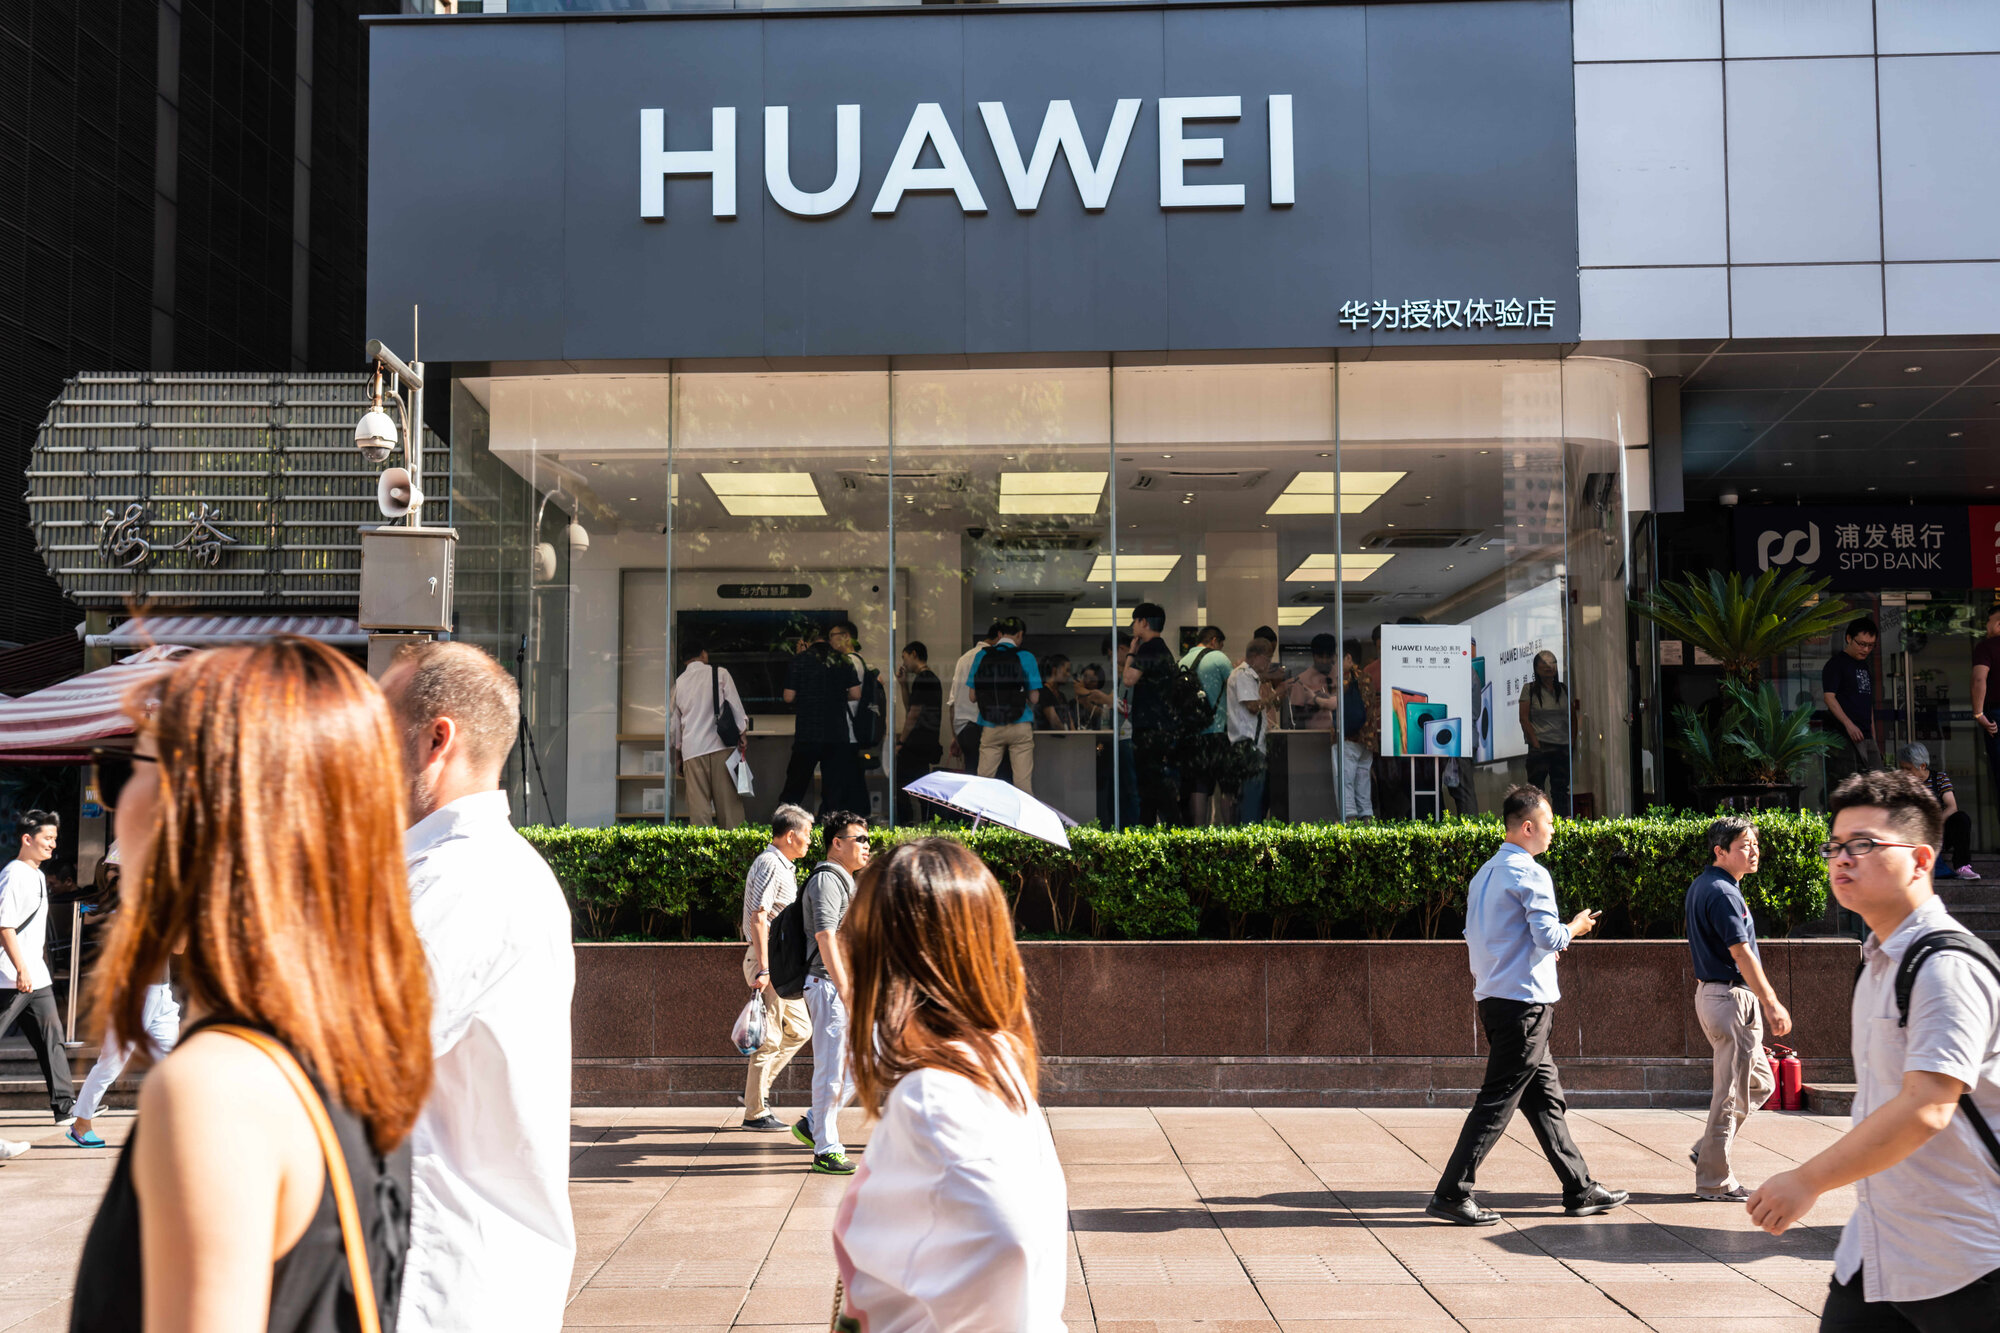 Huawei may have eavesdropped on Dutch mobile network's calls